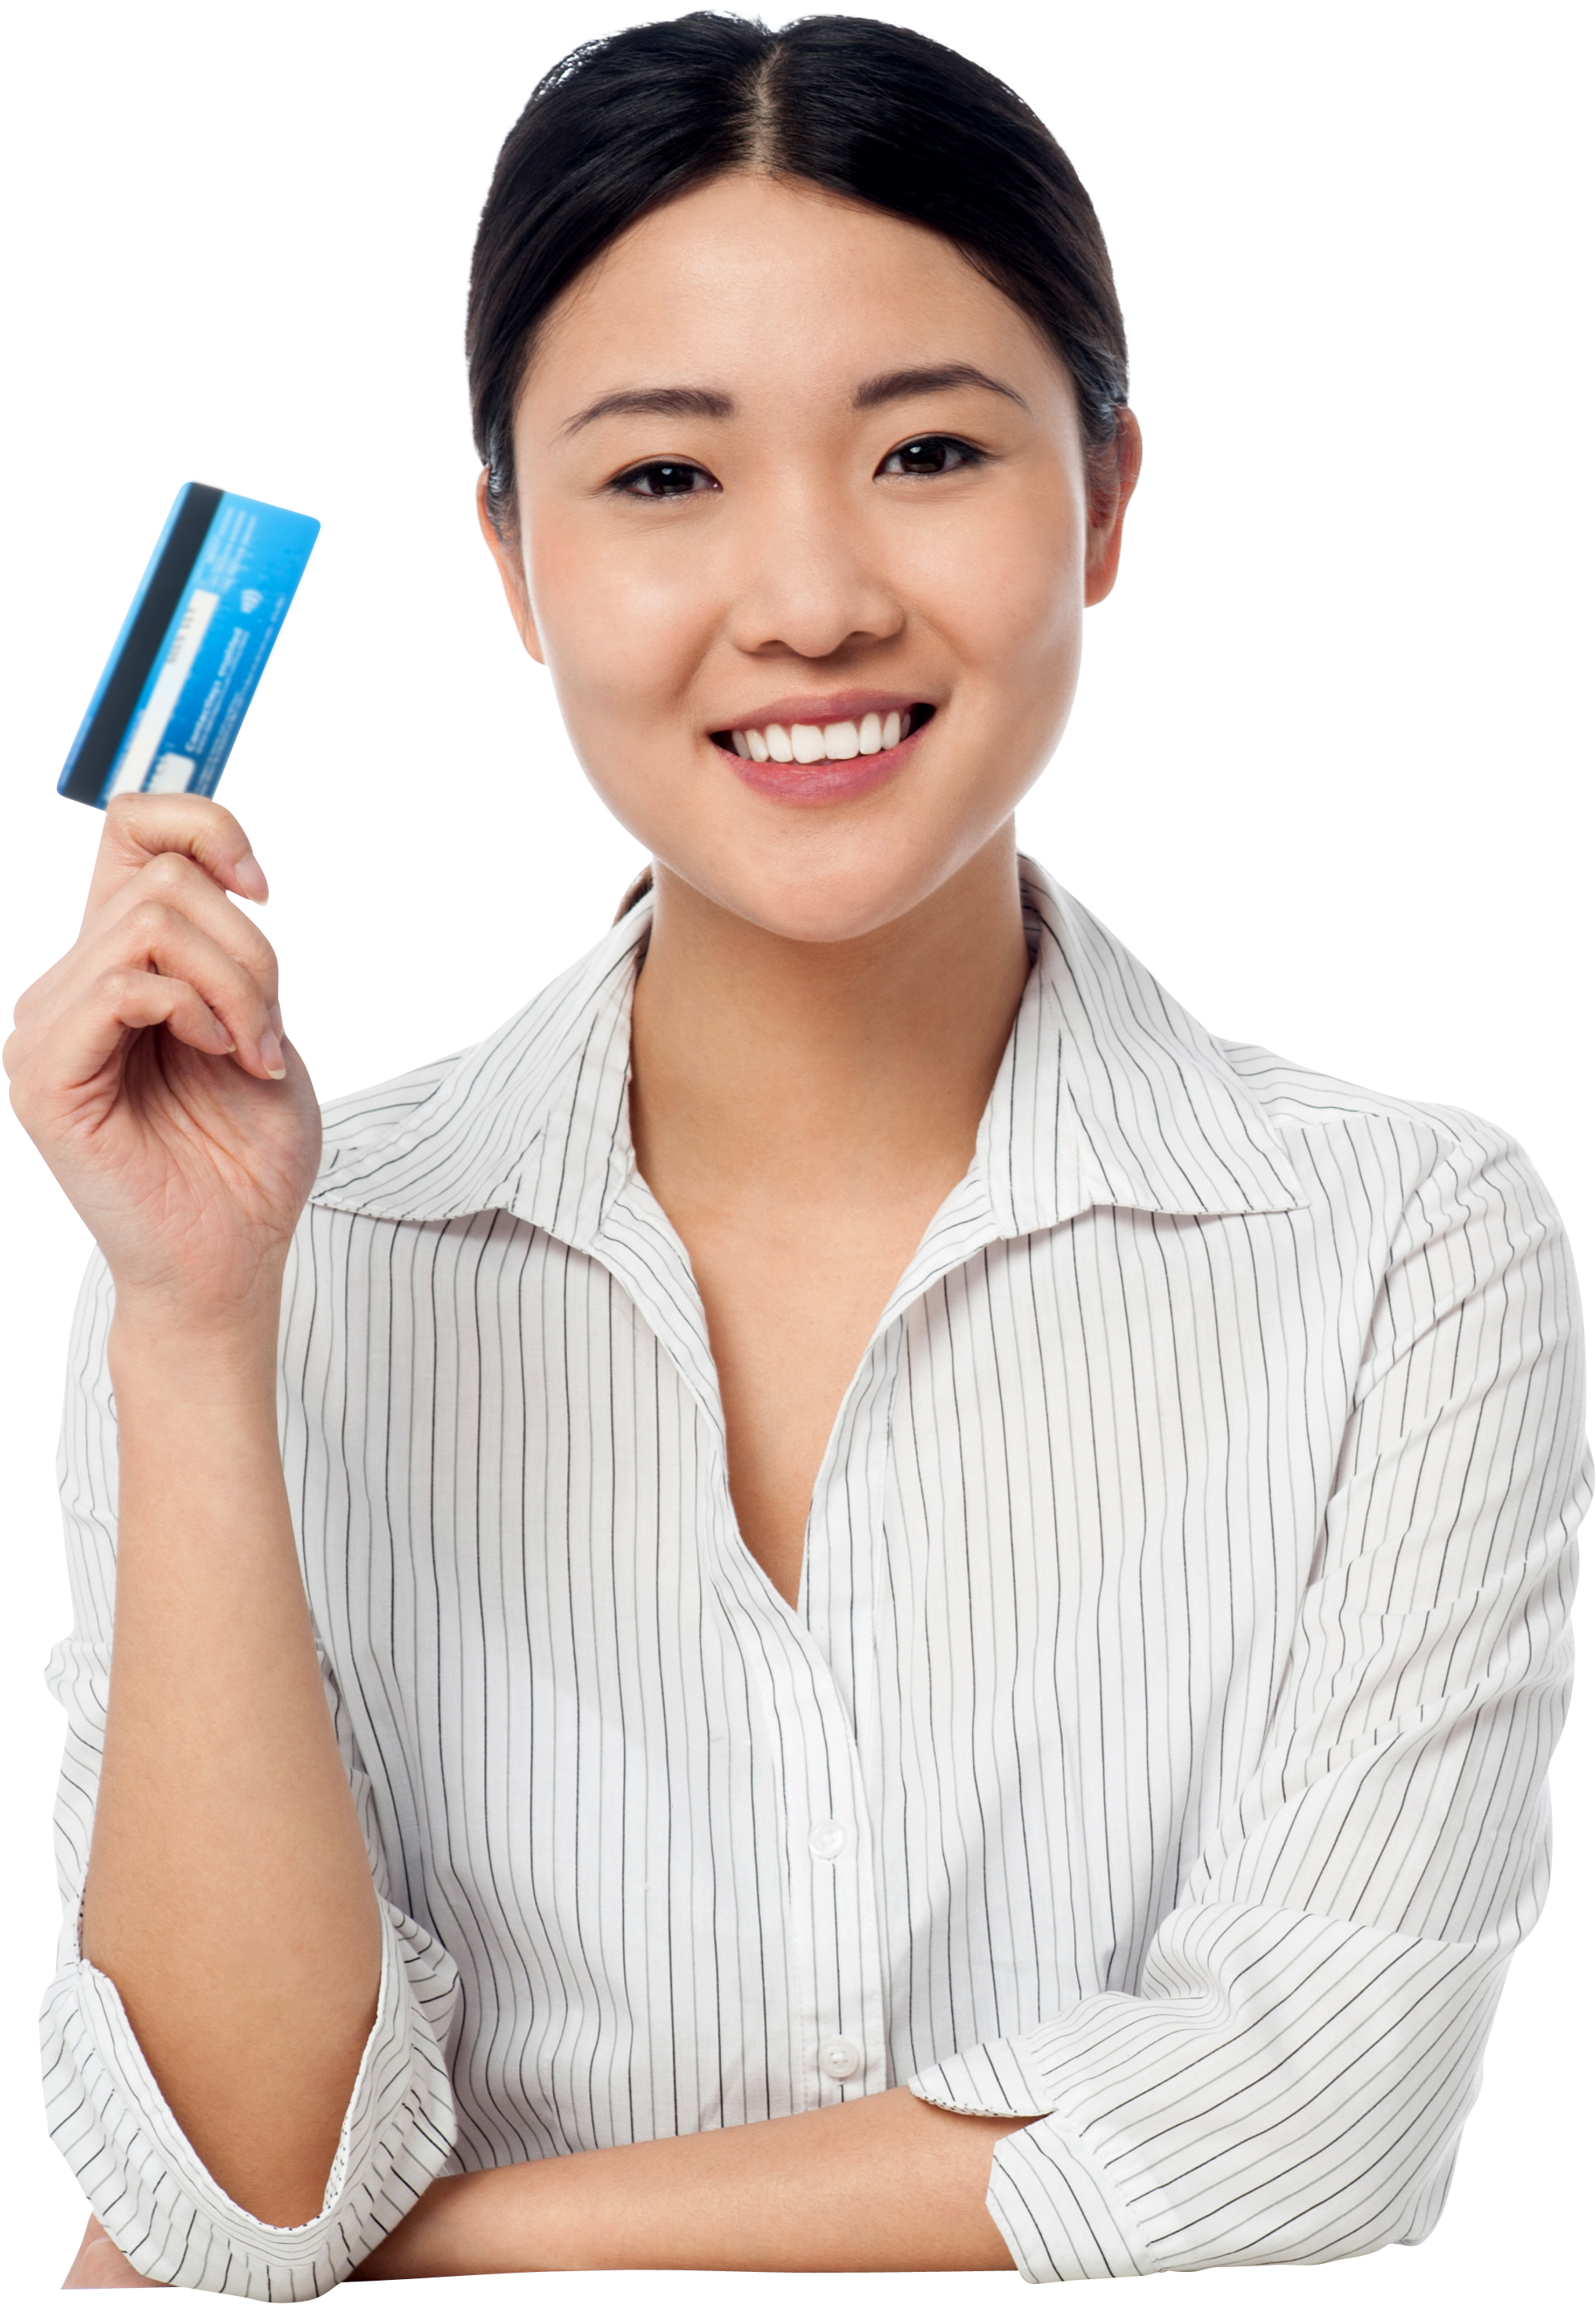 Women Holding Credit Card Free Commercial Use Png Image Woman Hold Card Png Transparent Cartoon Jing Fm